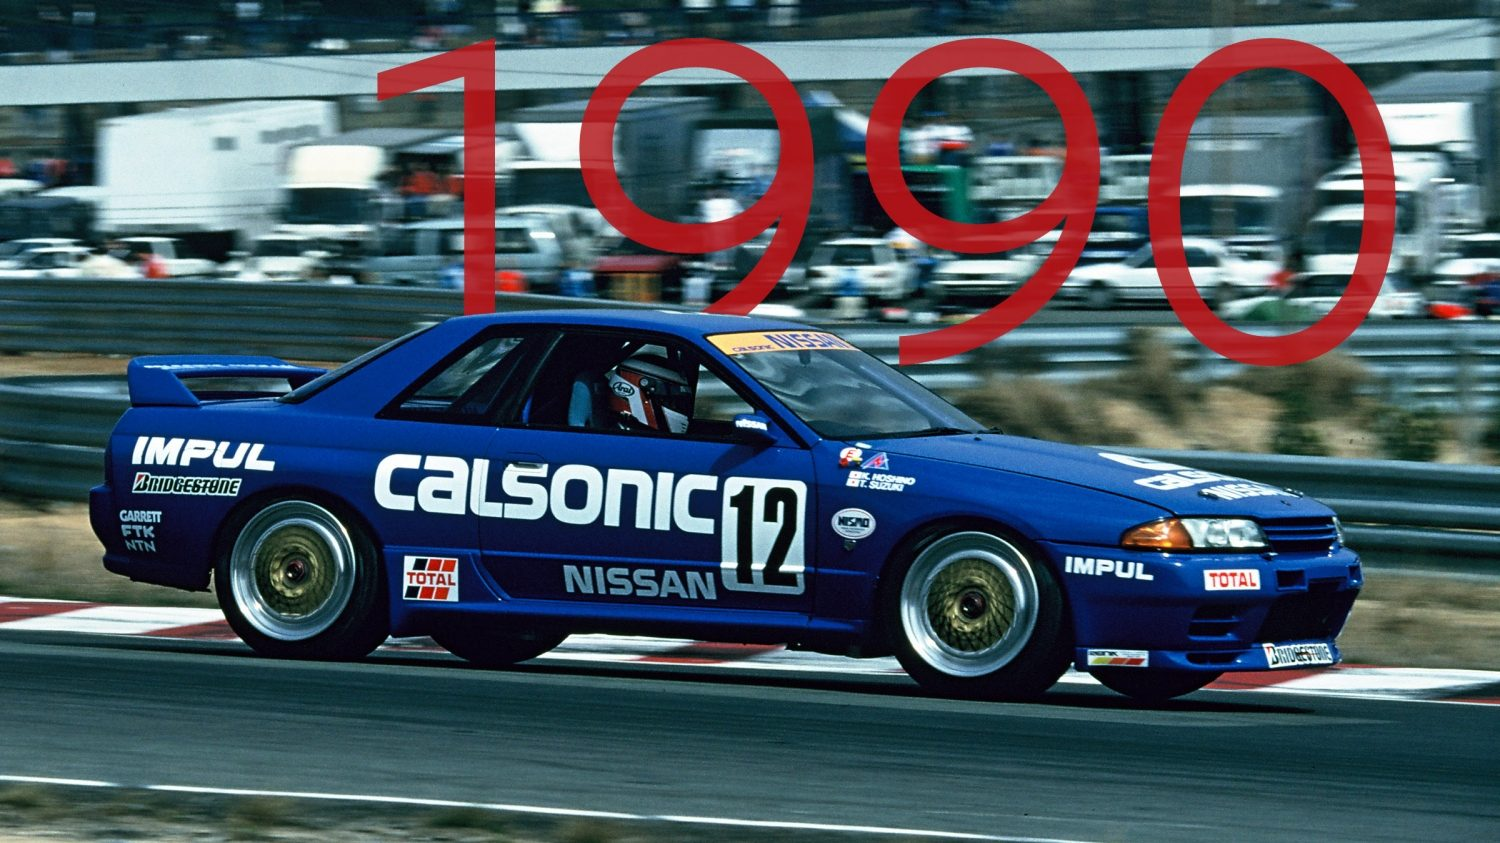 1990 GT-R compitiendo en All-Japan Touring Car Championships